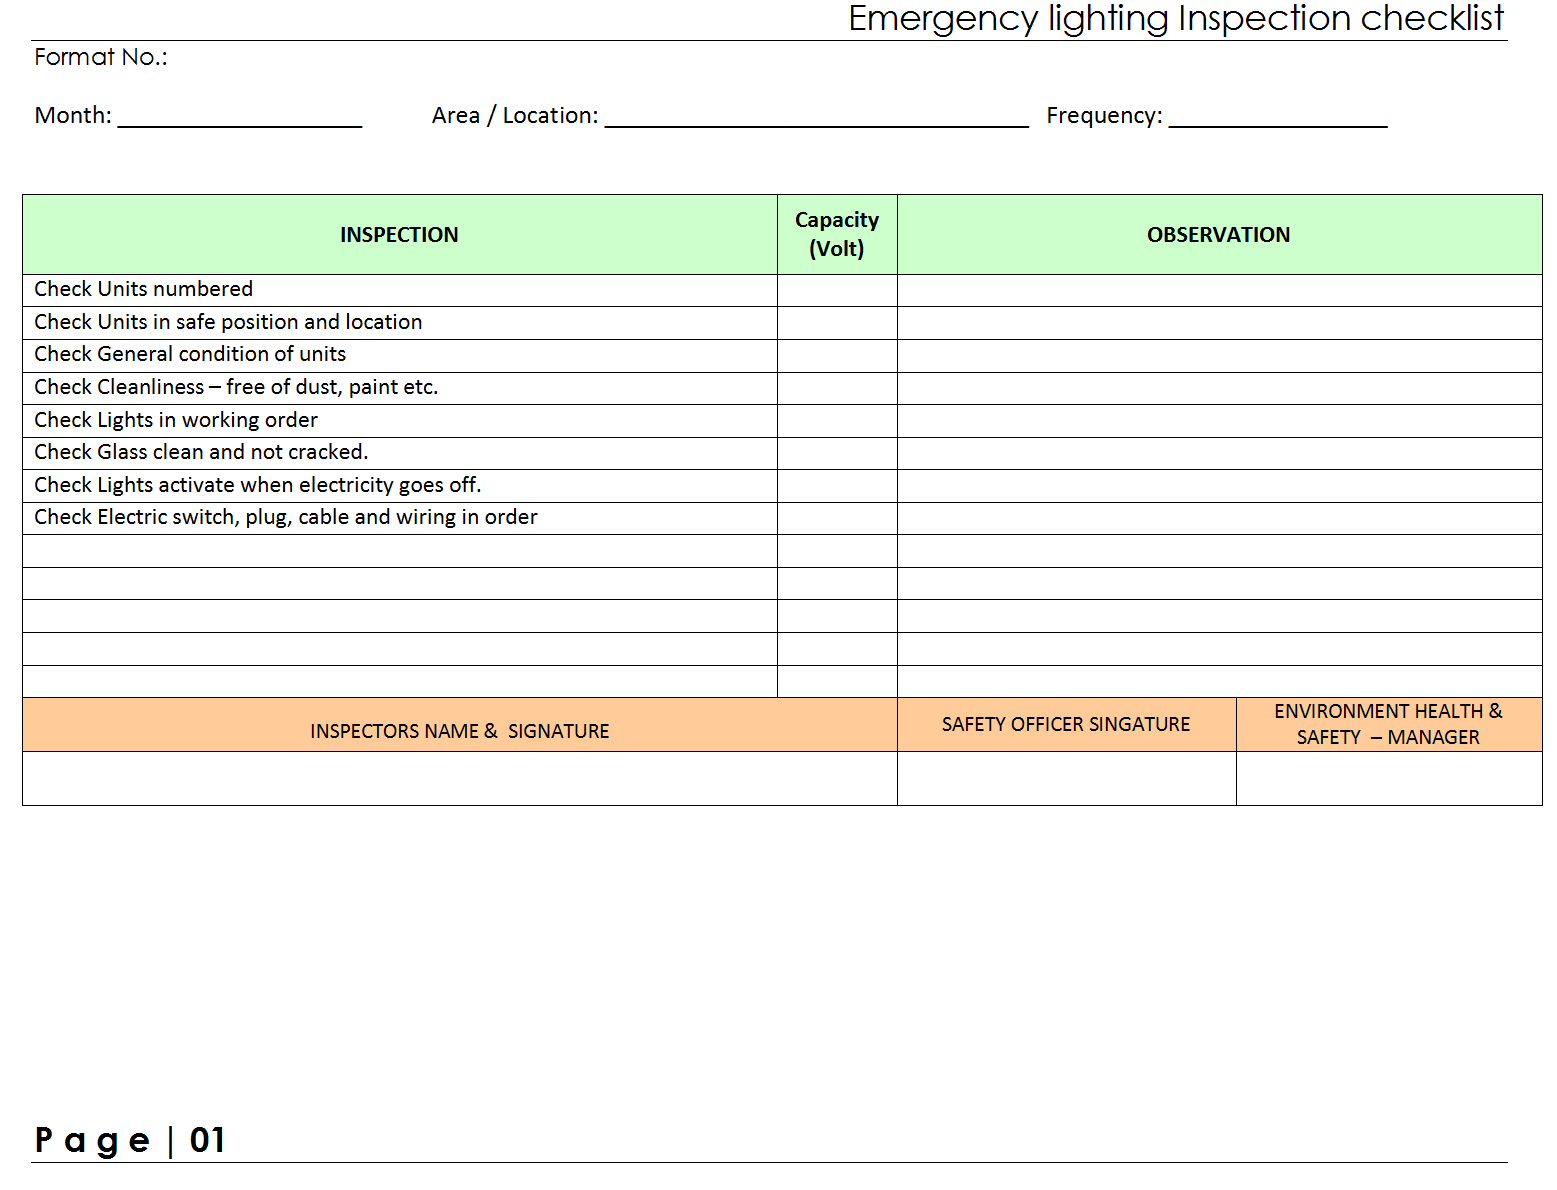 Emergency lighting Inspection Checklist| Report | S&le | Word document format | Excel Format | PDF format | JPG Format | Free Download  sc 1 st  EXCEL format & Emergency lighting Inspection Checklistformat | Samples | Word ...